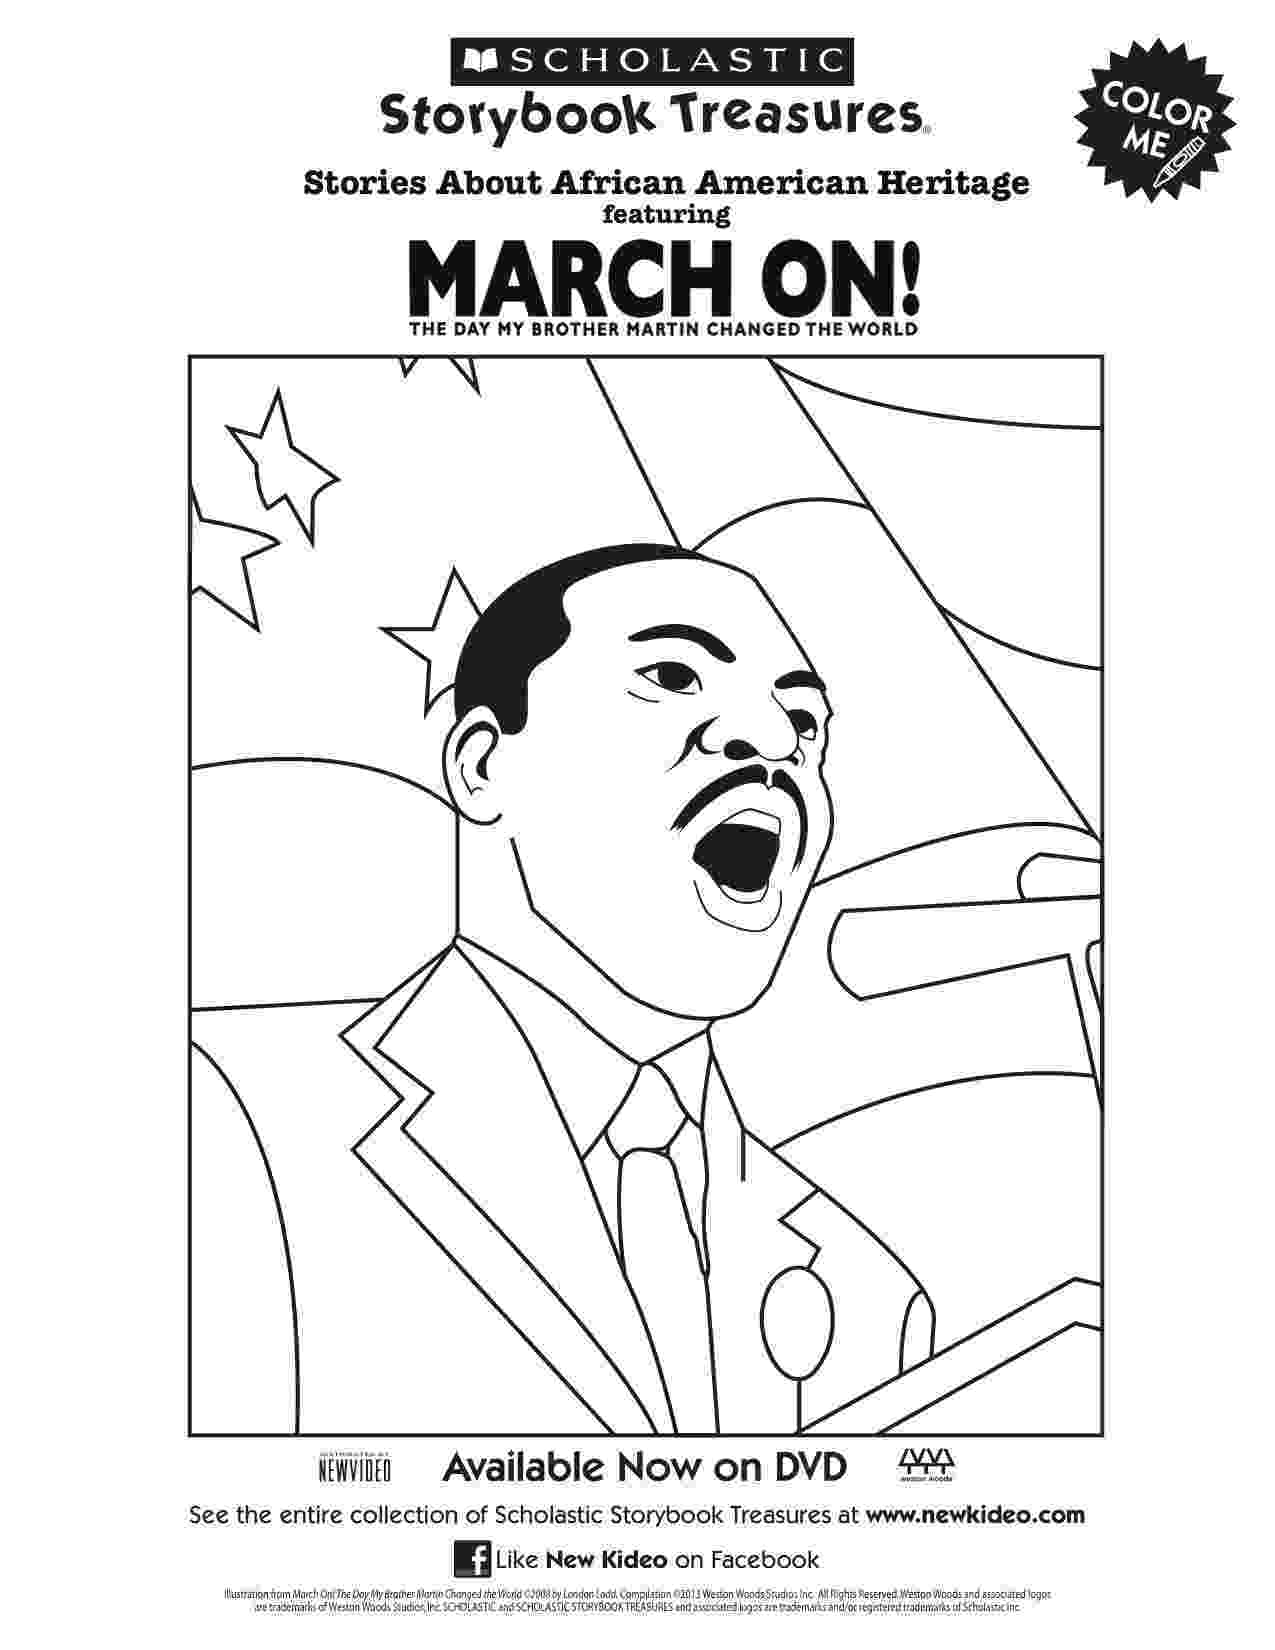 dr king coloring pages printable martin luther king jr coloring pages martin luther king pages king printable coloring dr